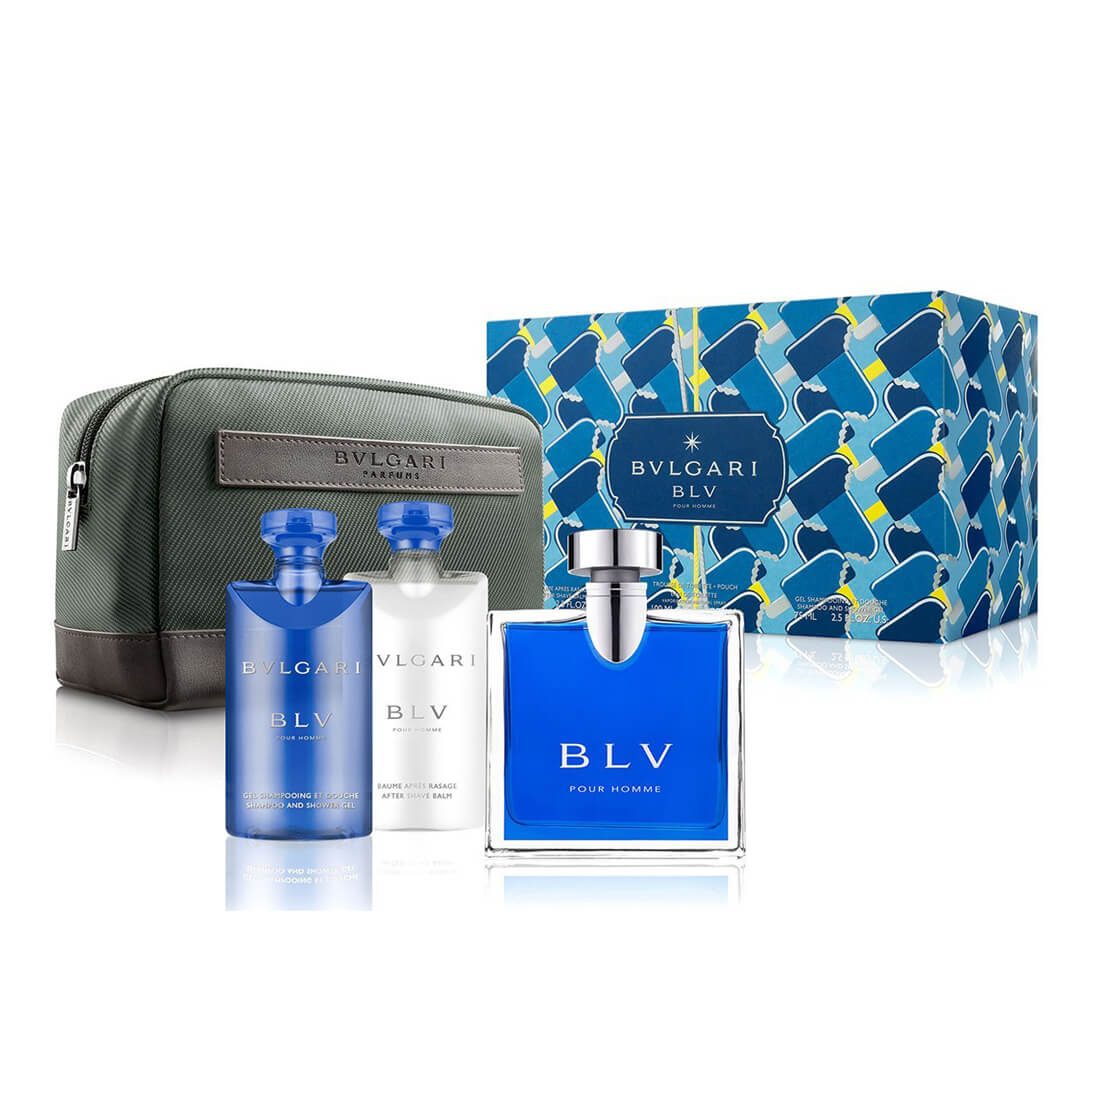 Bvlgari BLV Pour Homme Gift Set For Men